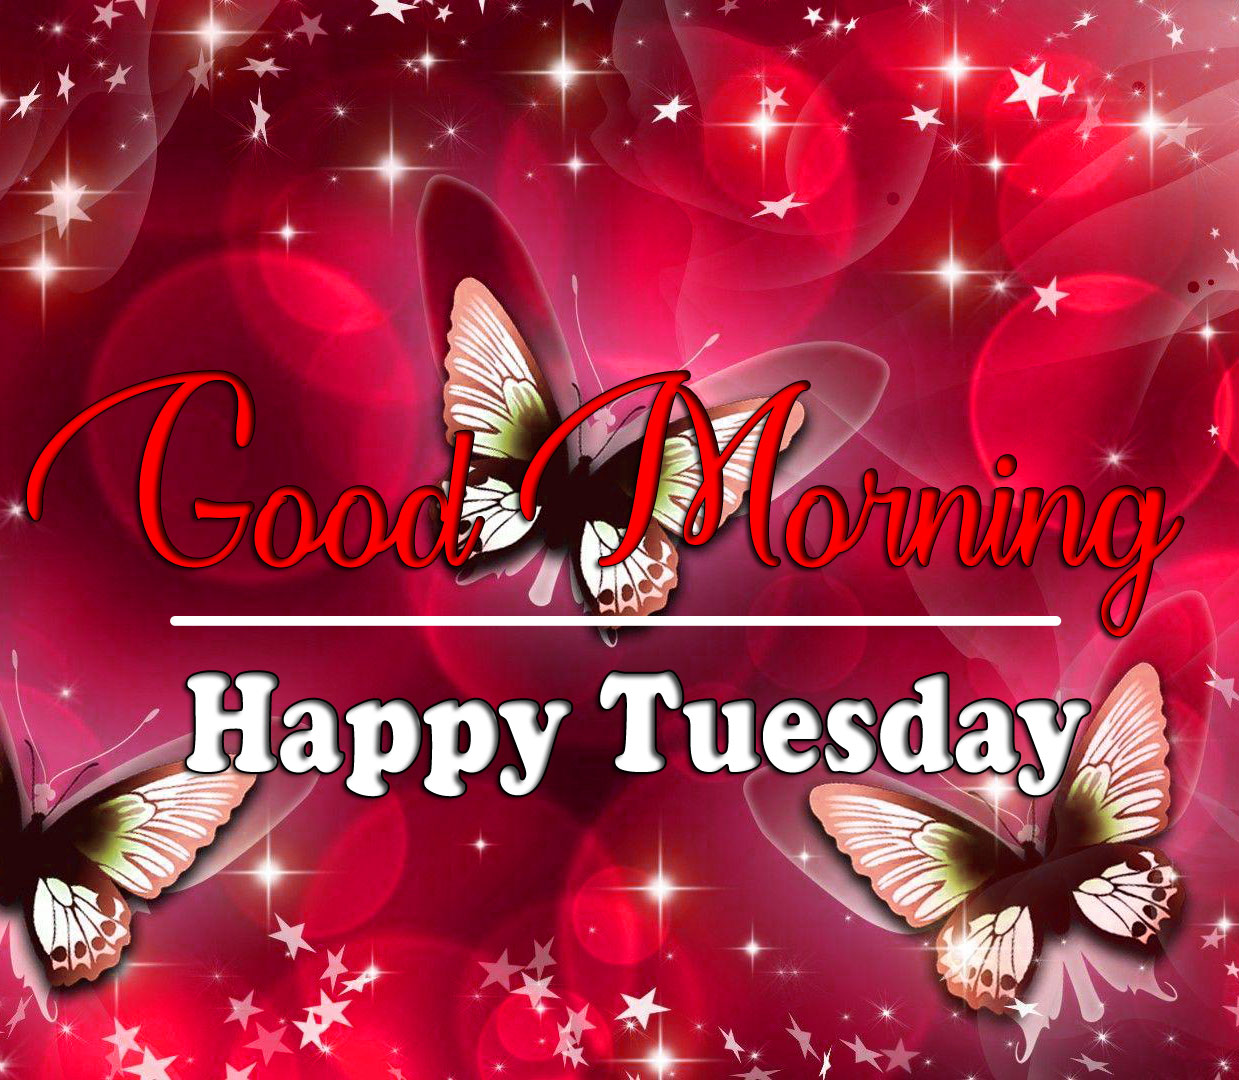 Top HD Tuesday Good morning Images 2021